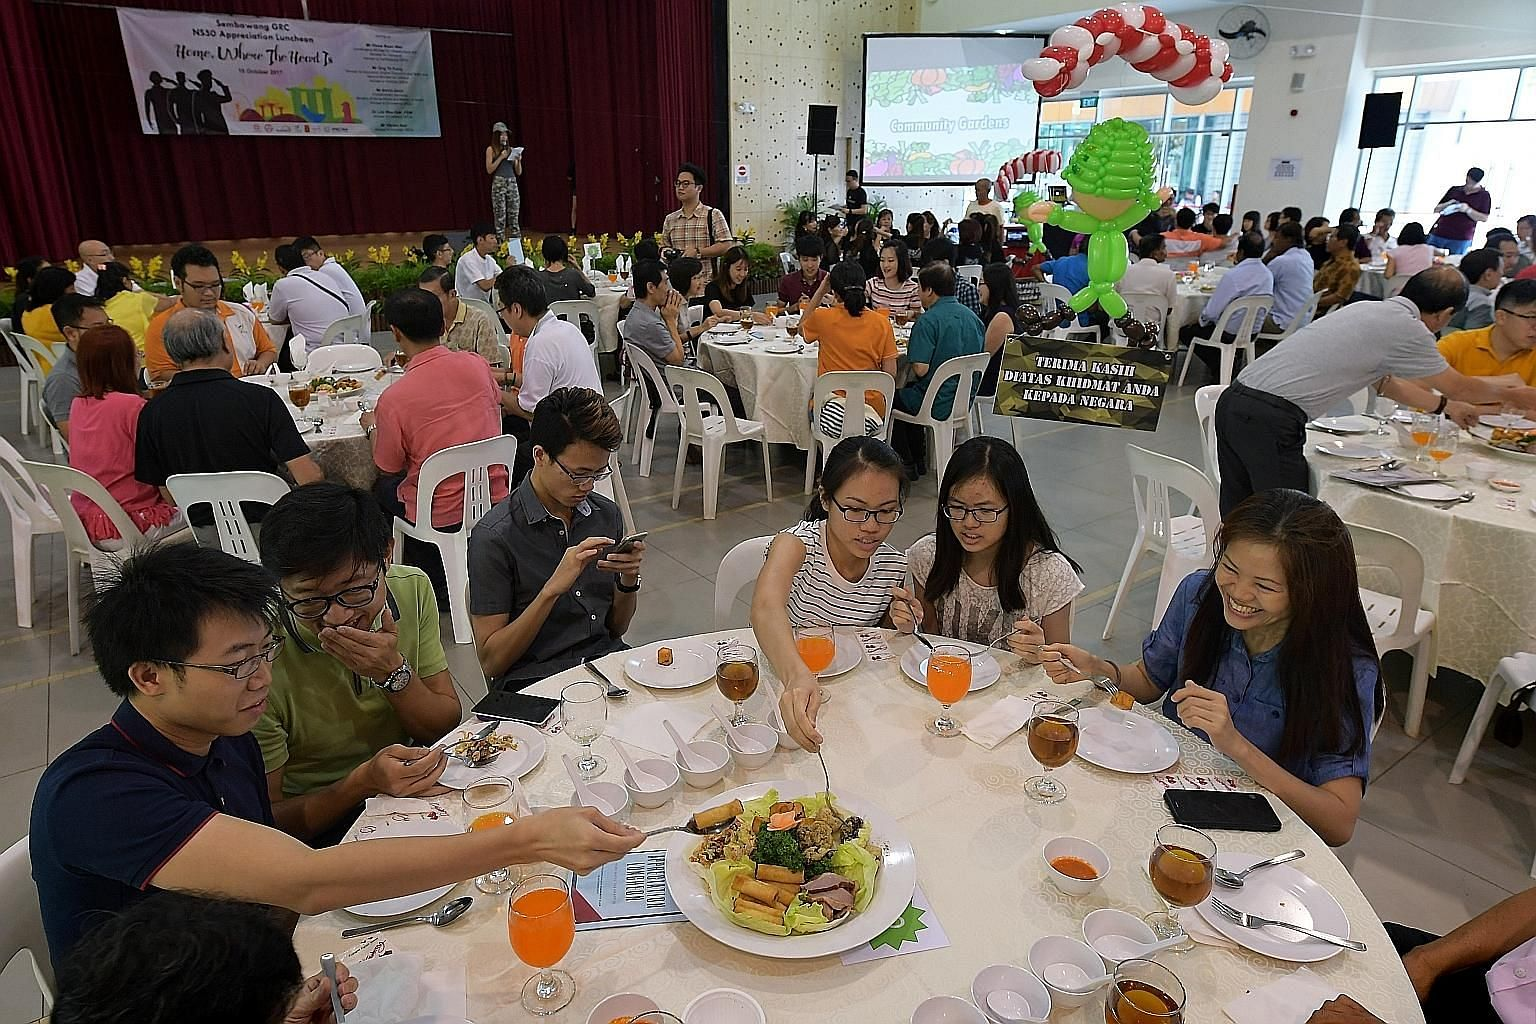 NSmen and their families tucking in to a lunch cooked using vegetables from a community garden, at Woodlands Galaxy Community Club yesterday.